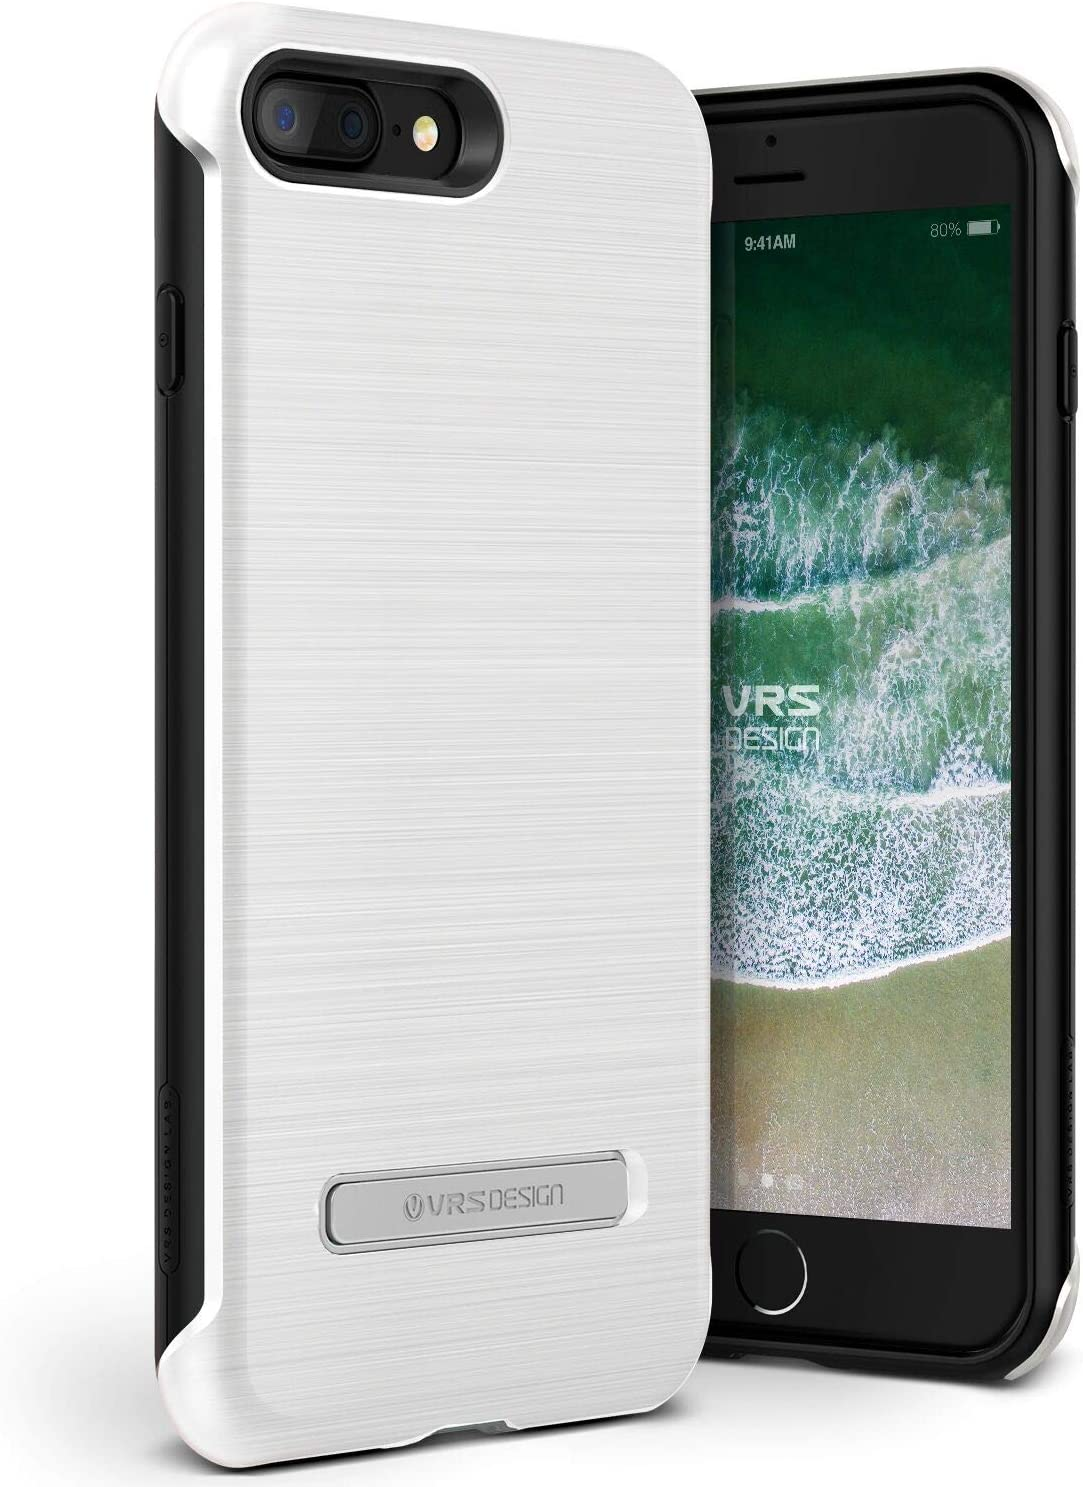 Lumion X VRS :: [Duo Guard] Dual Layer Hard Drop Protection :: Slim Thin Fit :: Heavy Duty Shock Absorption Cover Compatible with Apple iPhone 7 Plus / 8 Plus (White)